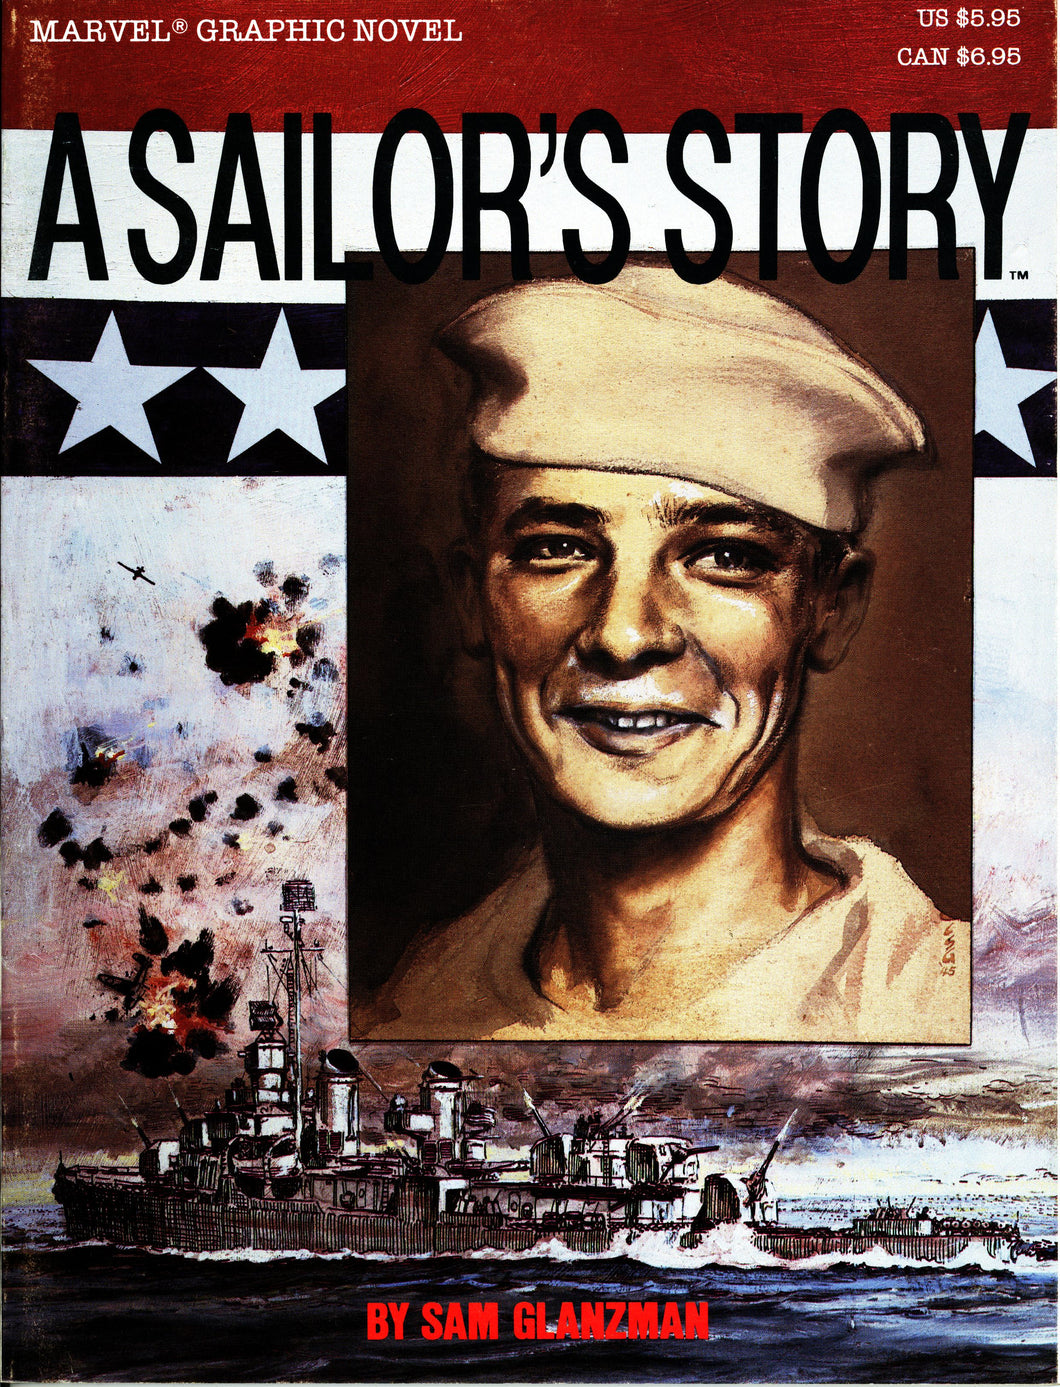 A SAILOR'S STORY MARVEL GRAPHIC NOVEL- VINTAGE